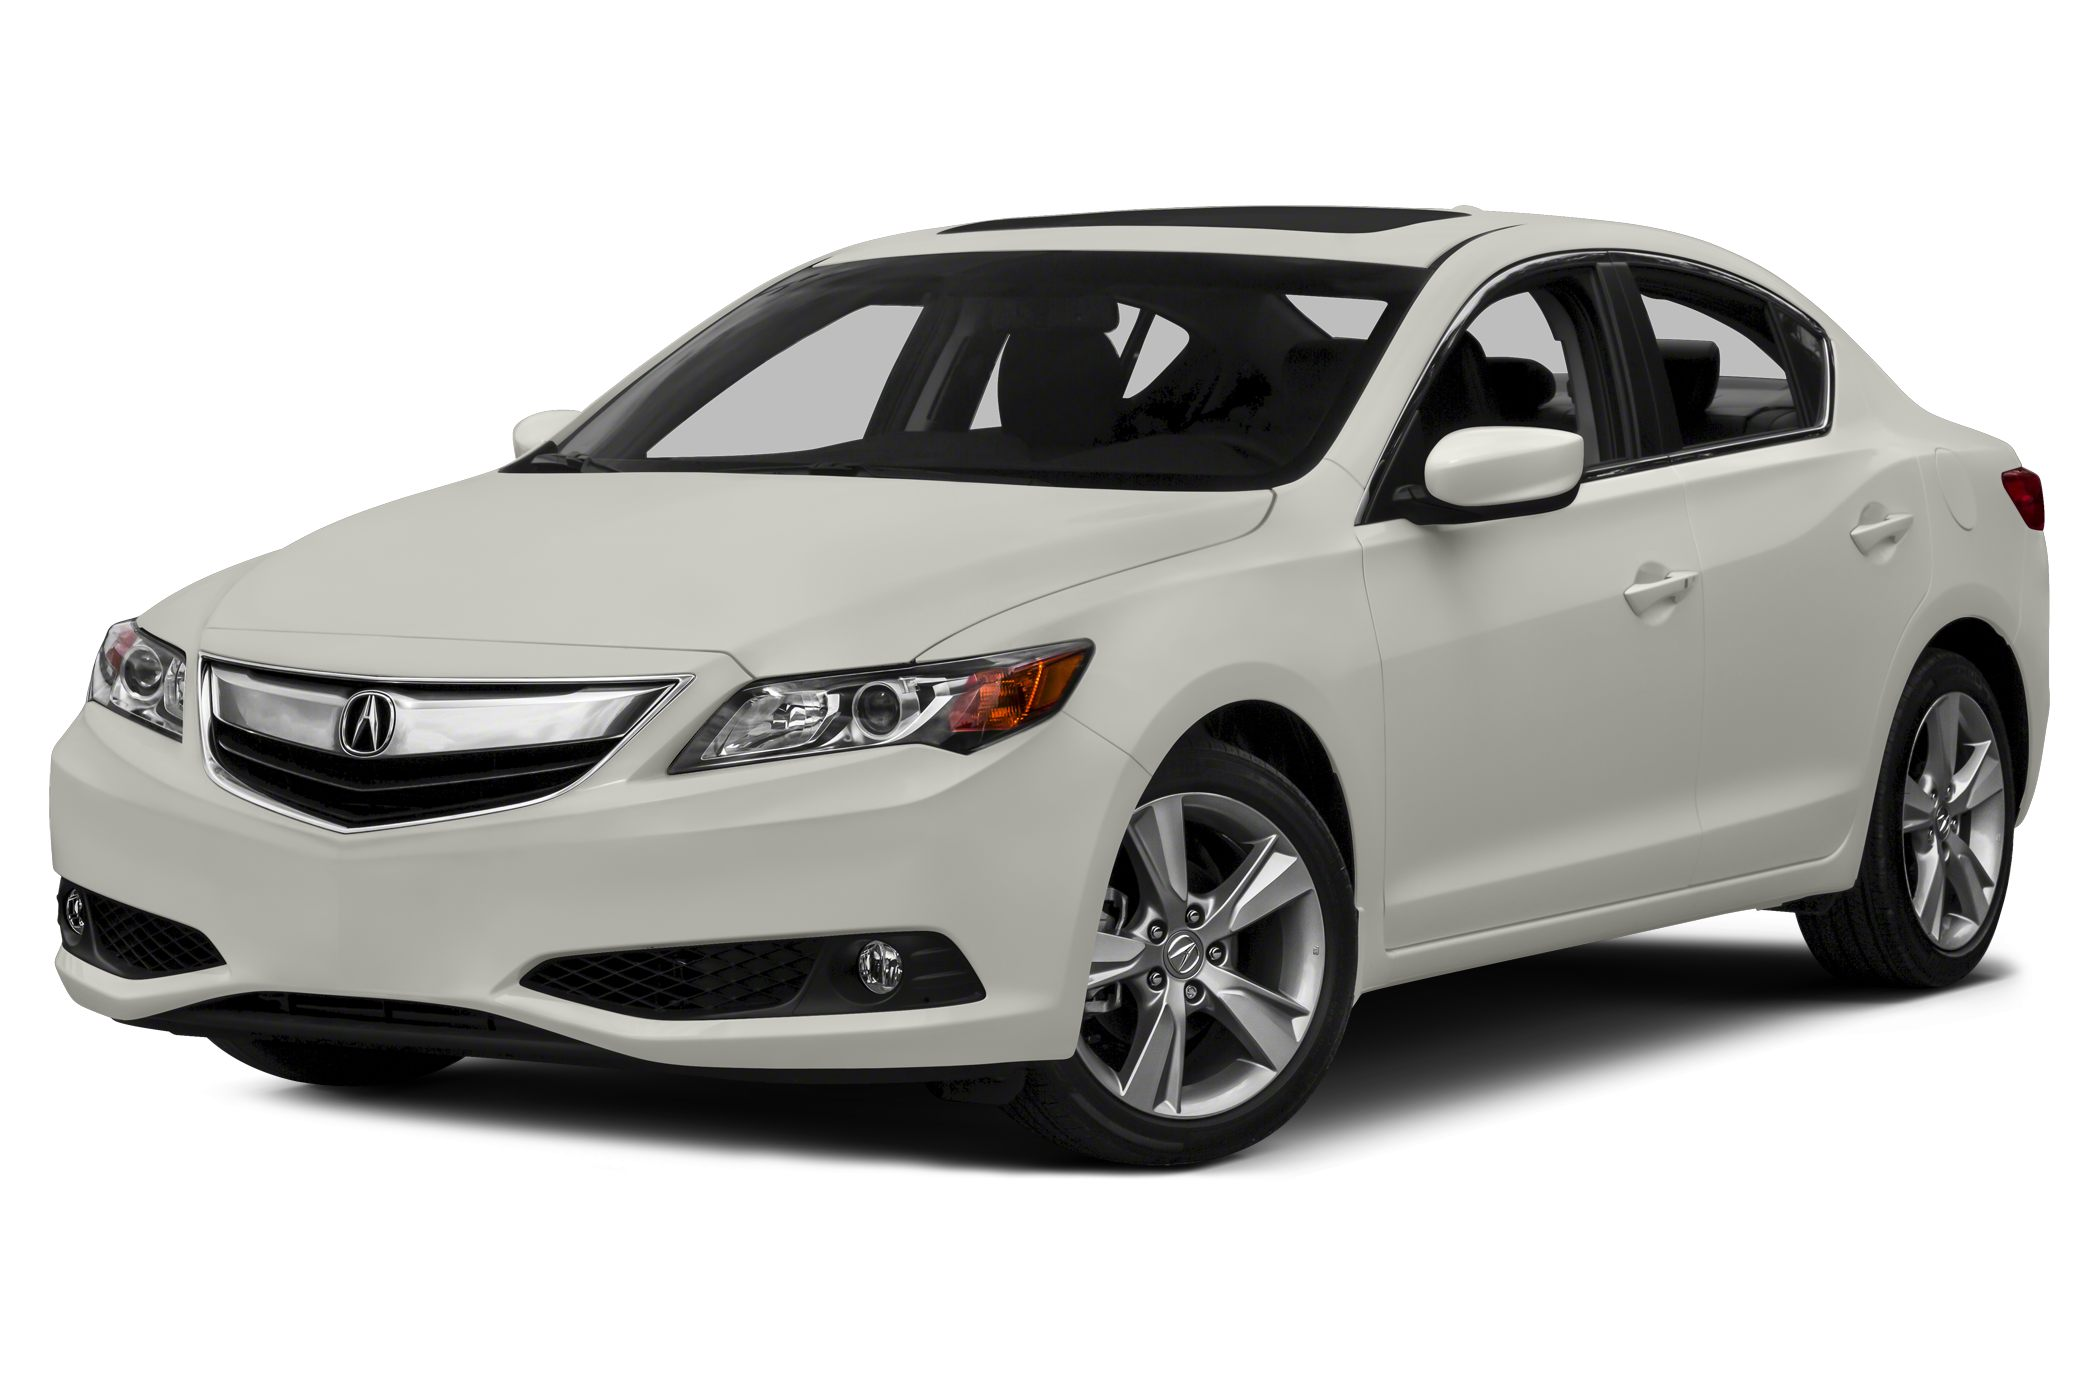 car price review reviews specs ilx new side concept acura usa hybrid